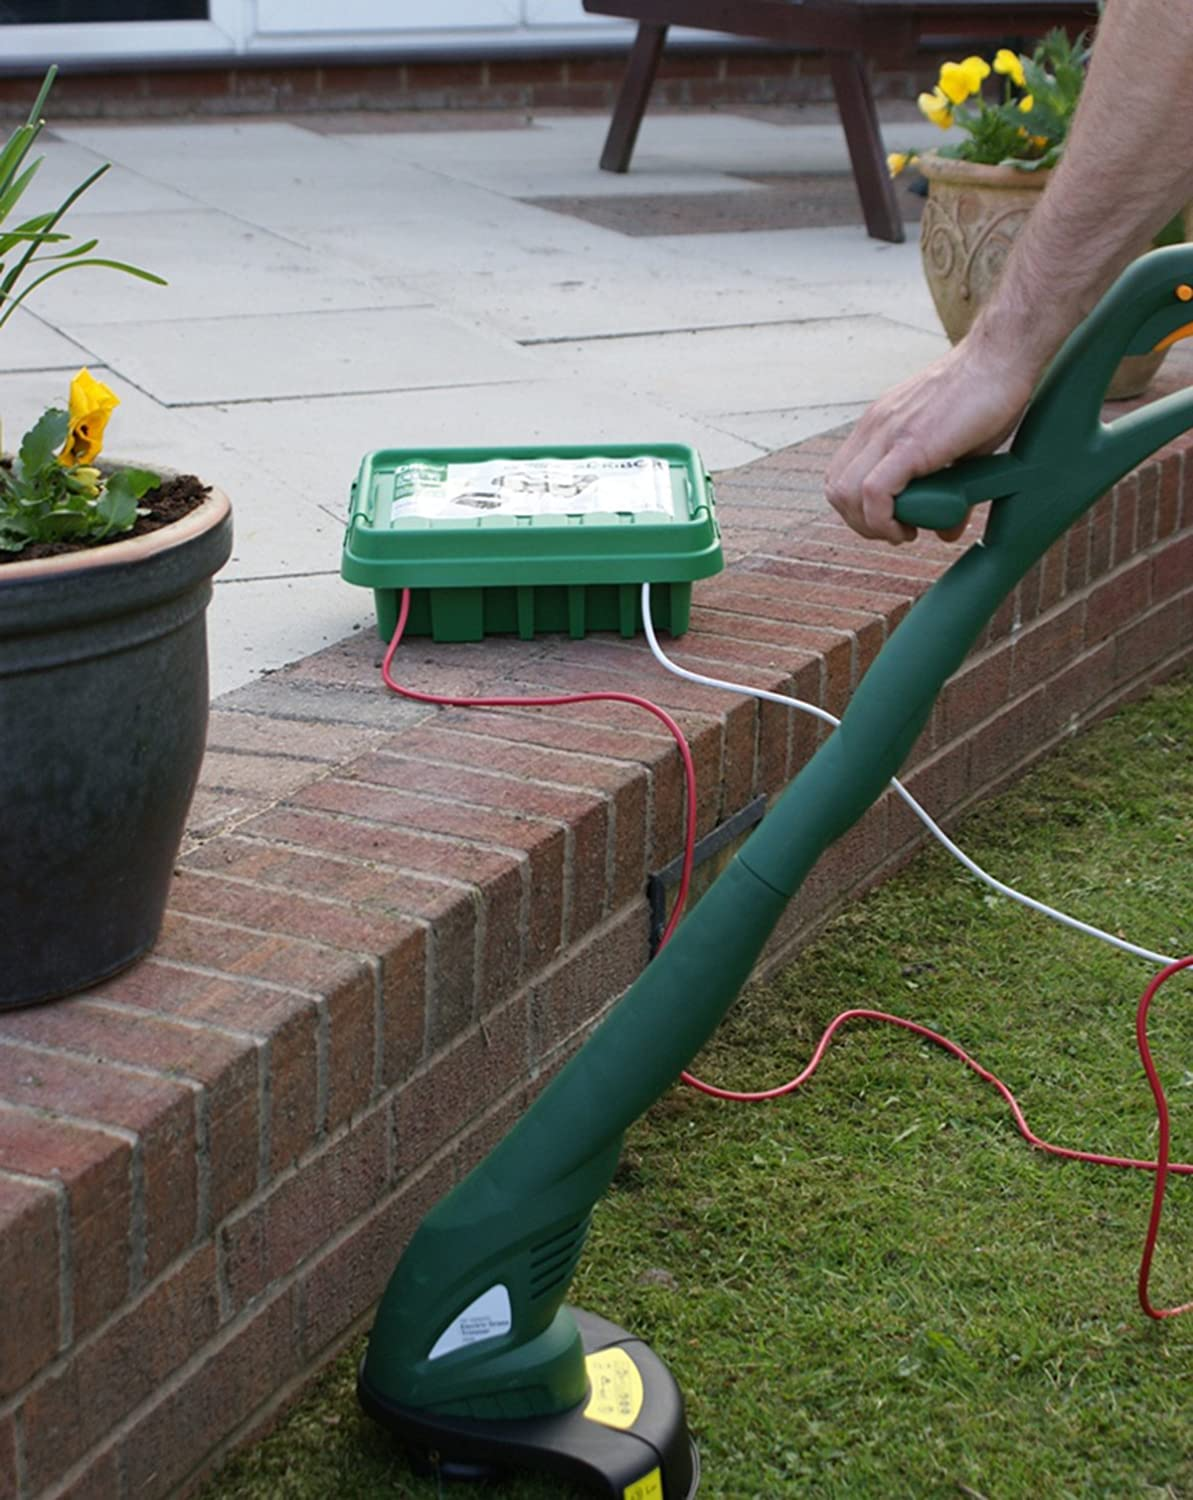 Sockitbox Weatherproof Indoor And Outdoor Electrical Power Cord Run Wires Underground To Reach Sheds Lights Patios Connection Enclosure Box Medium Green